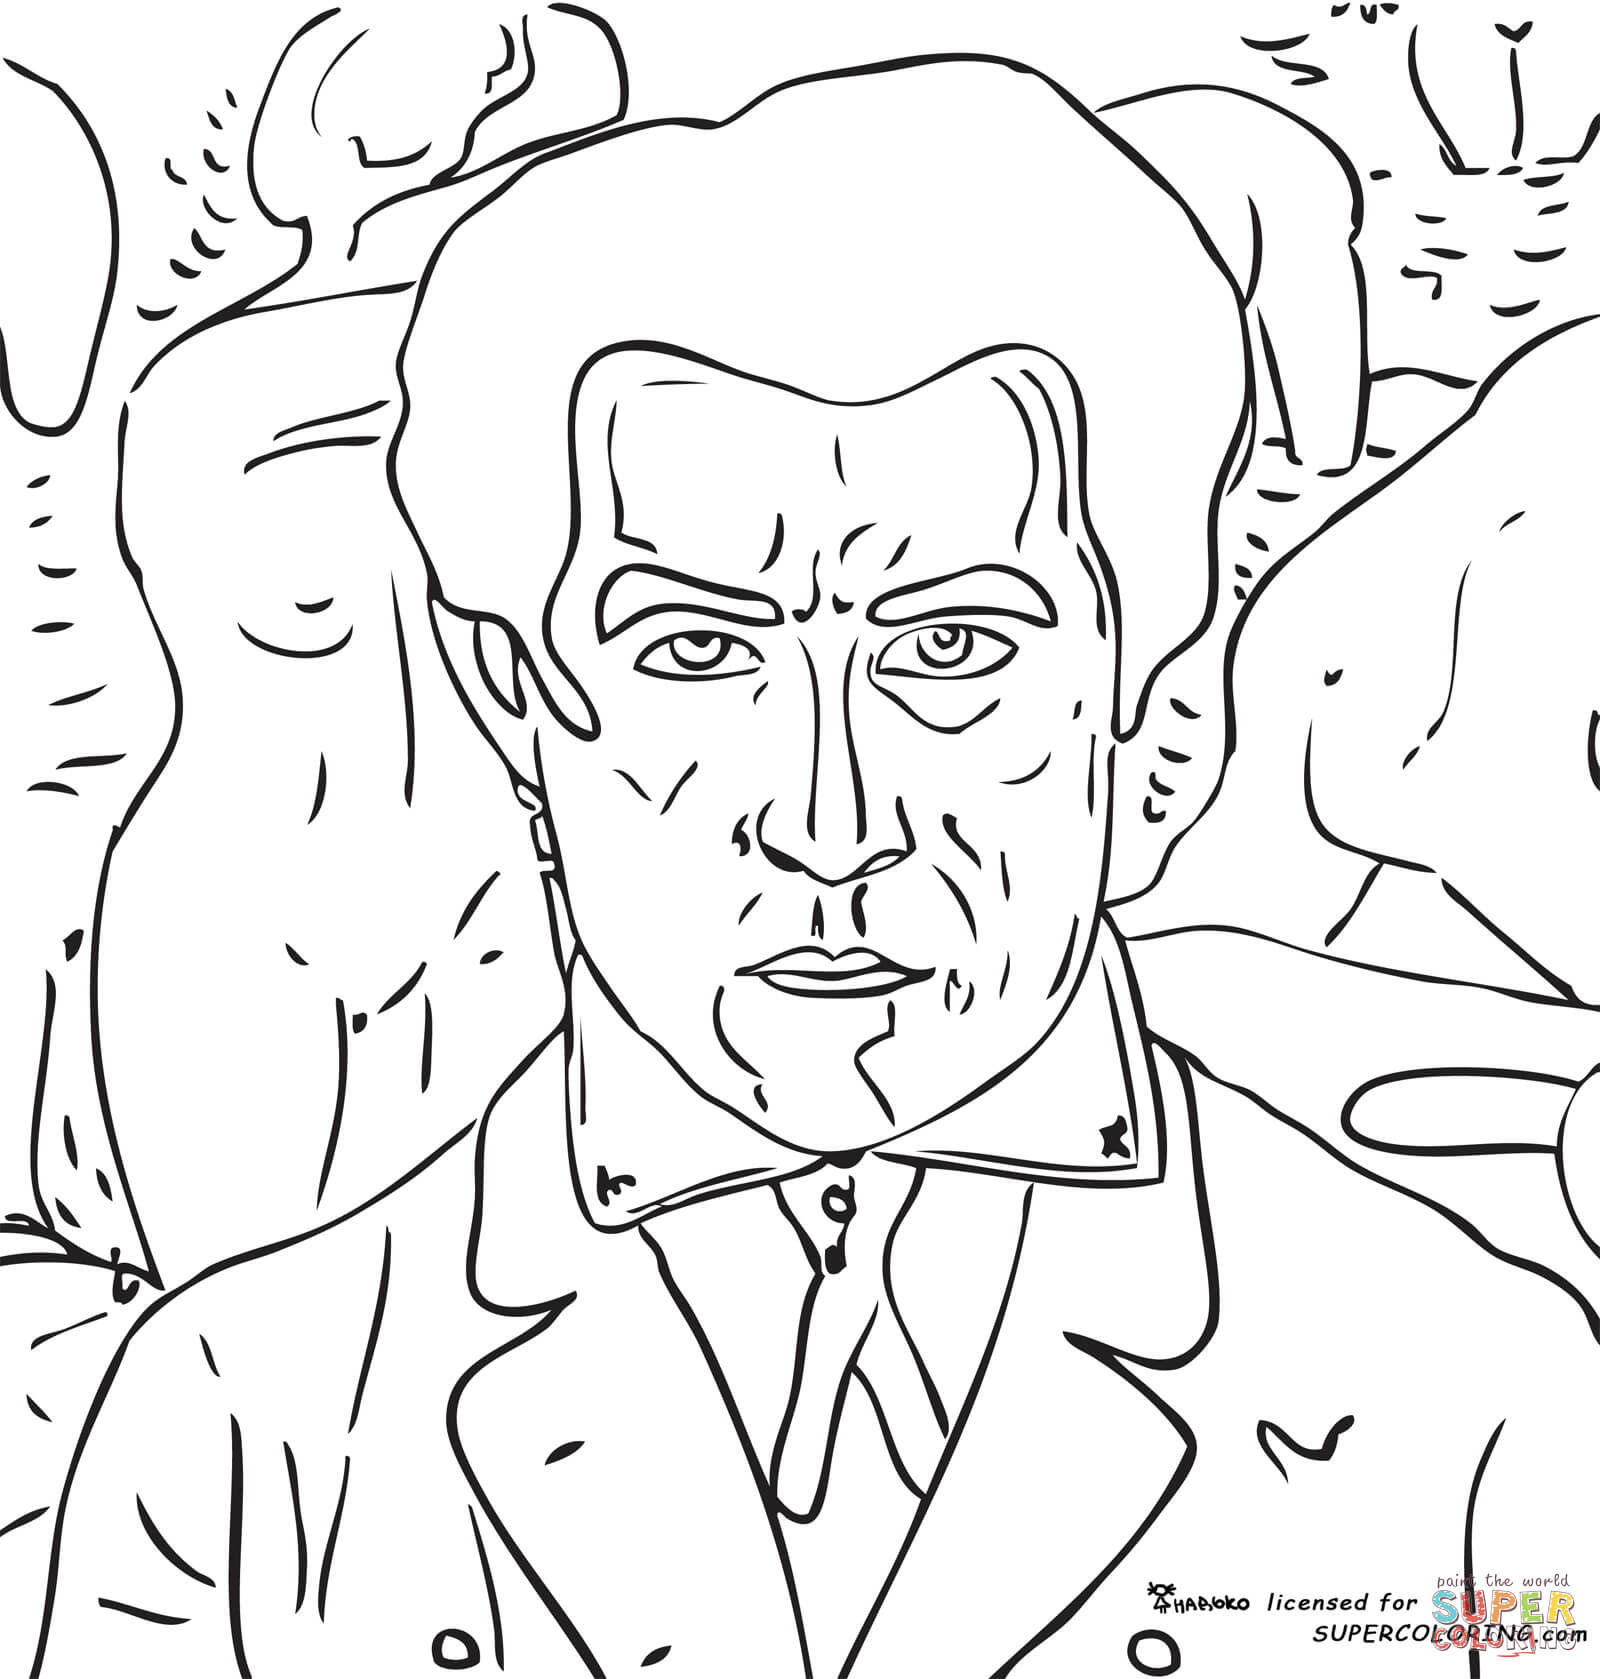 Download You Self Portrait Coloring Pages